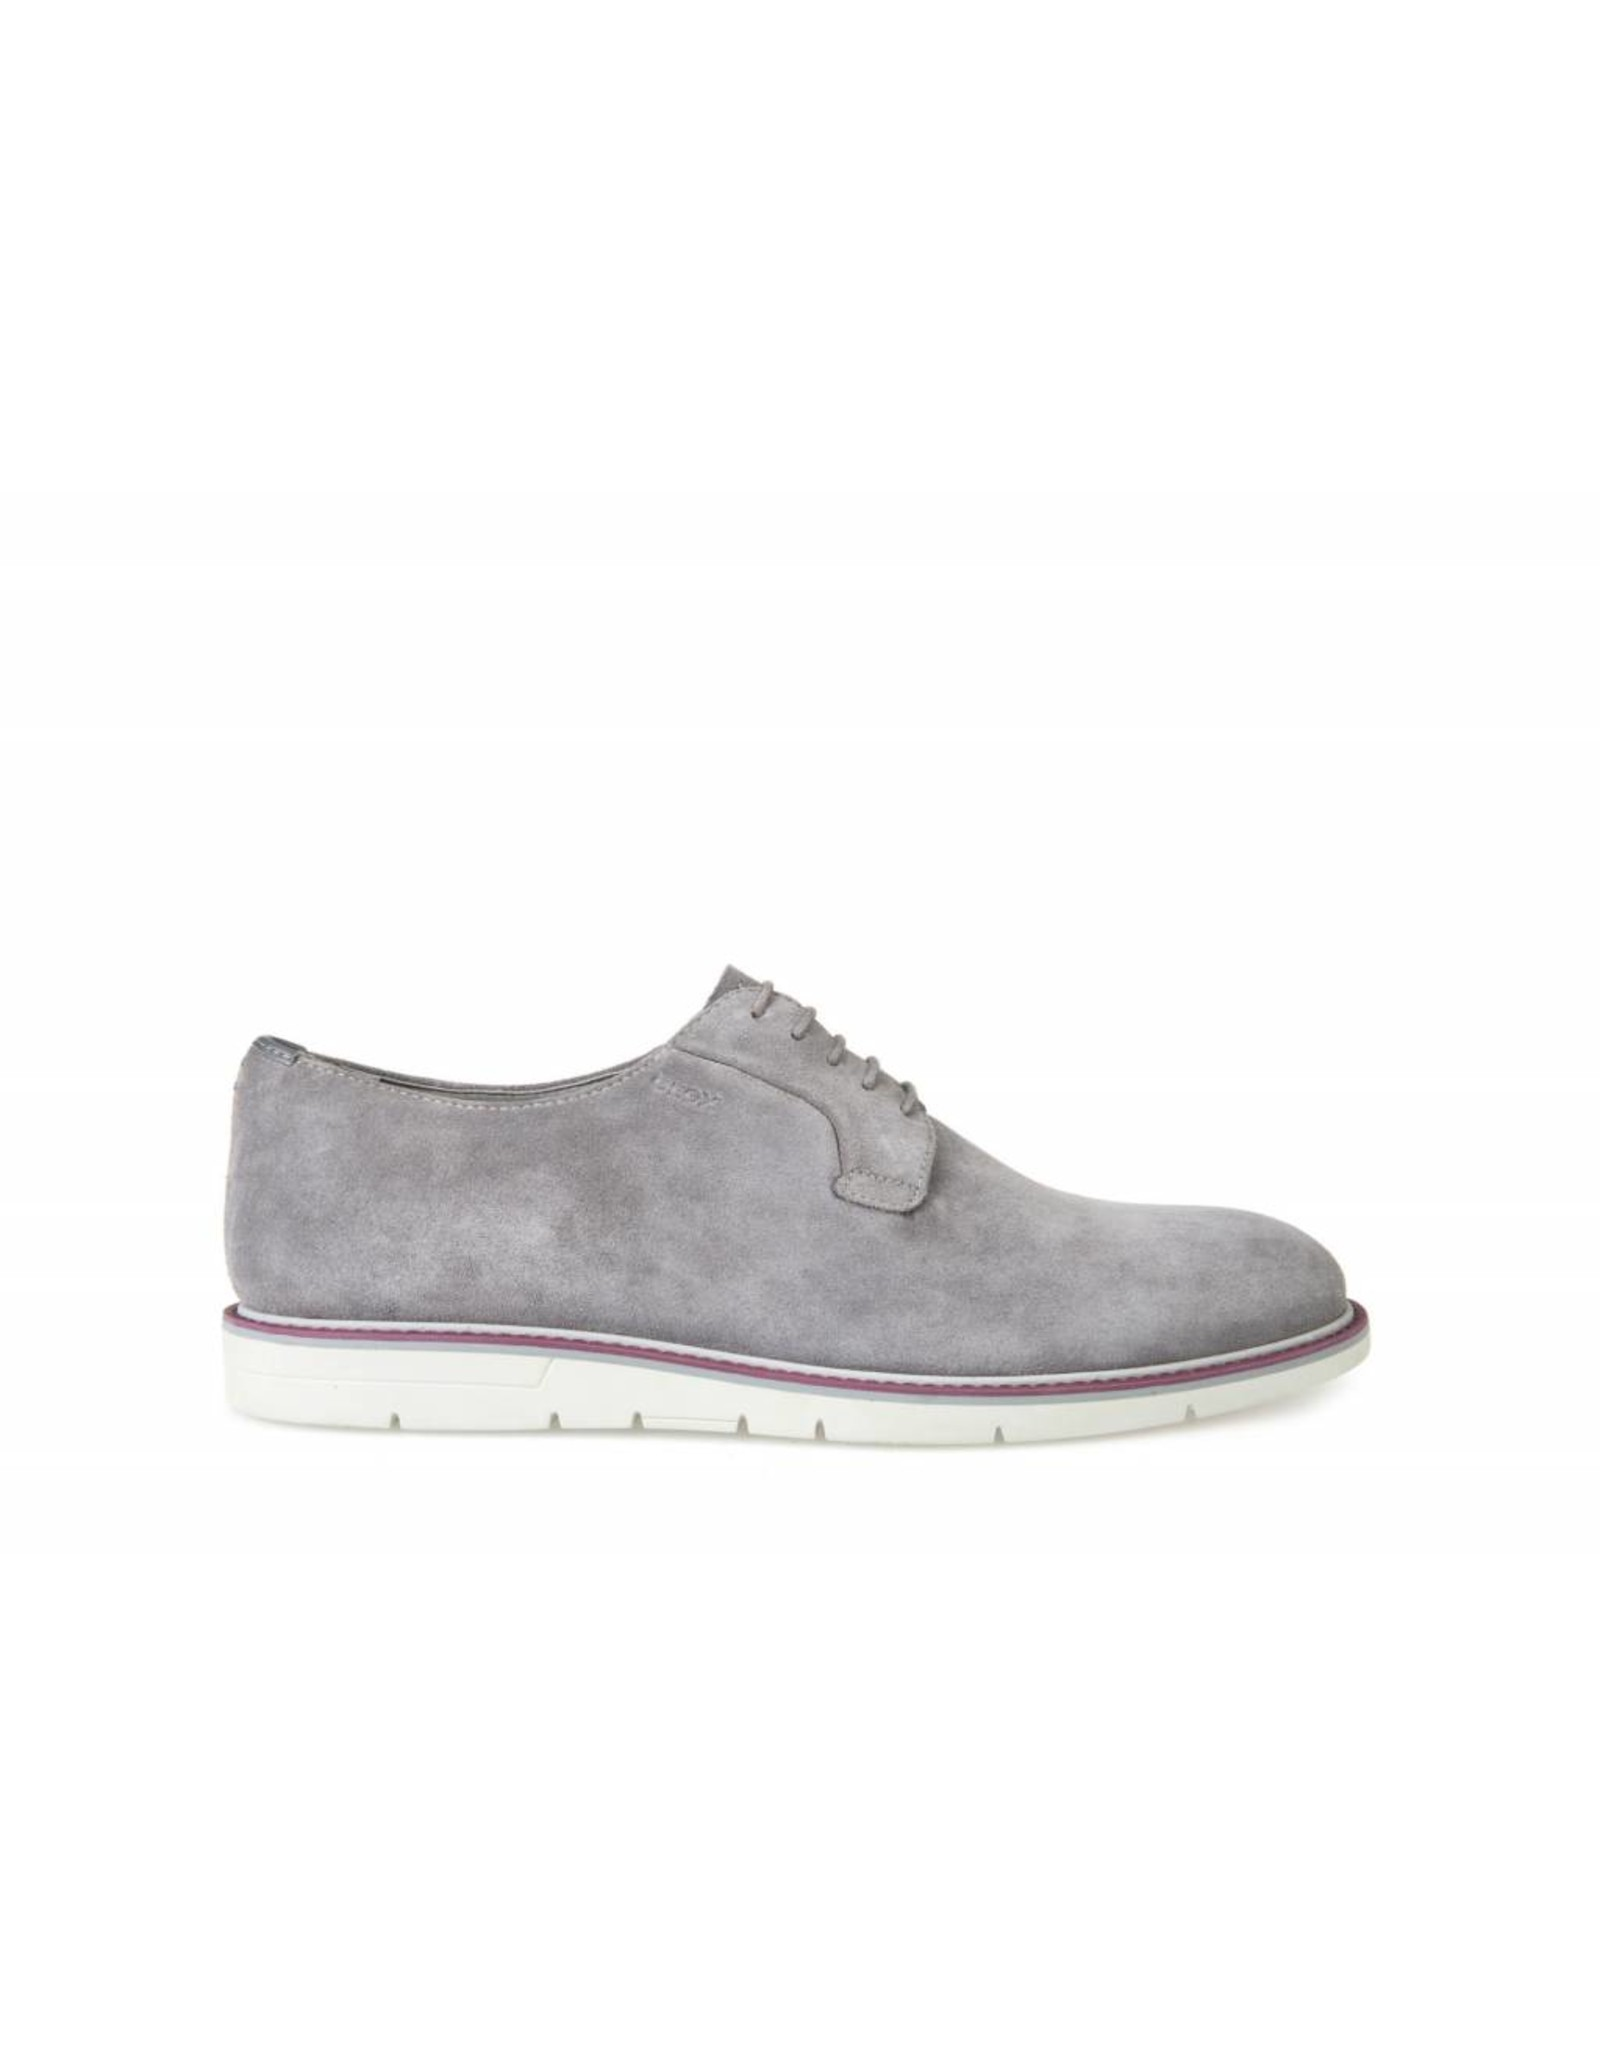 Geox Uvet Grey Suede Shoe